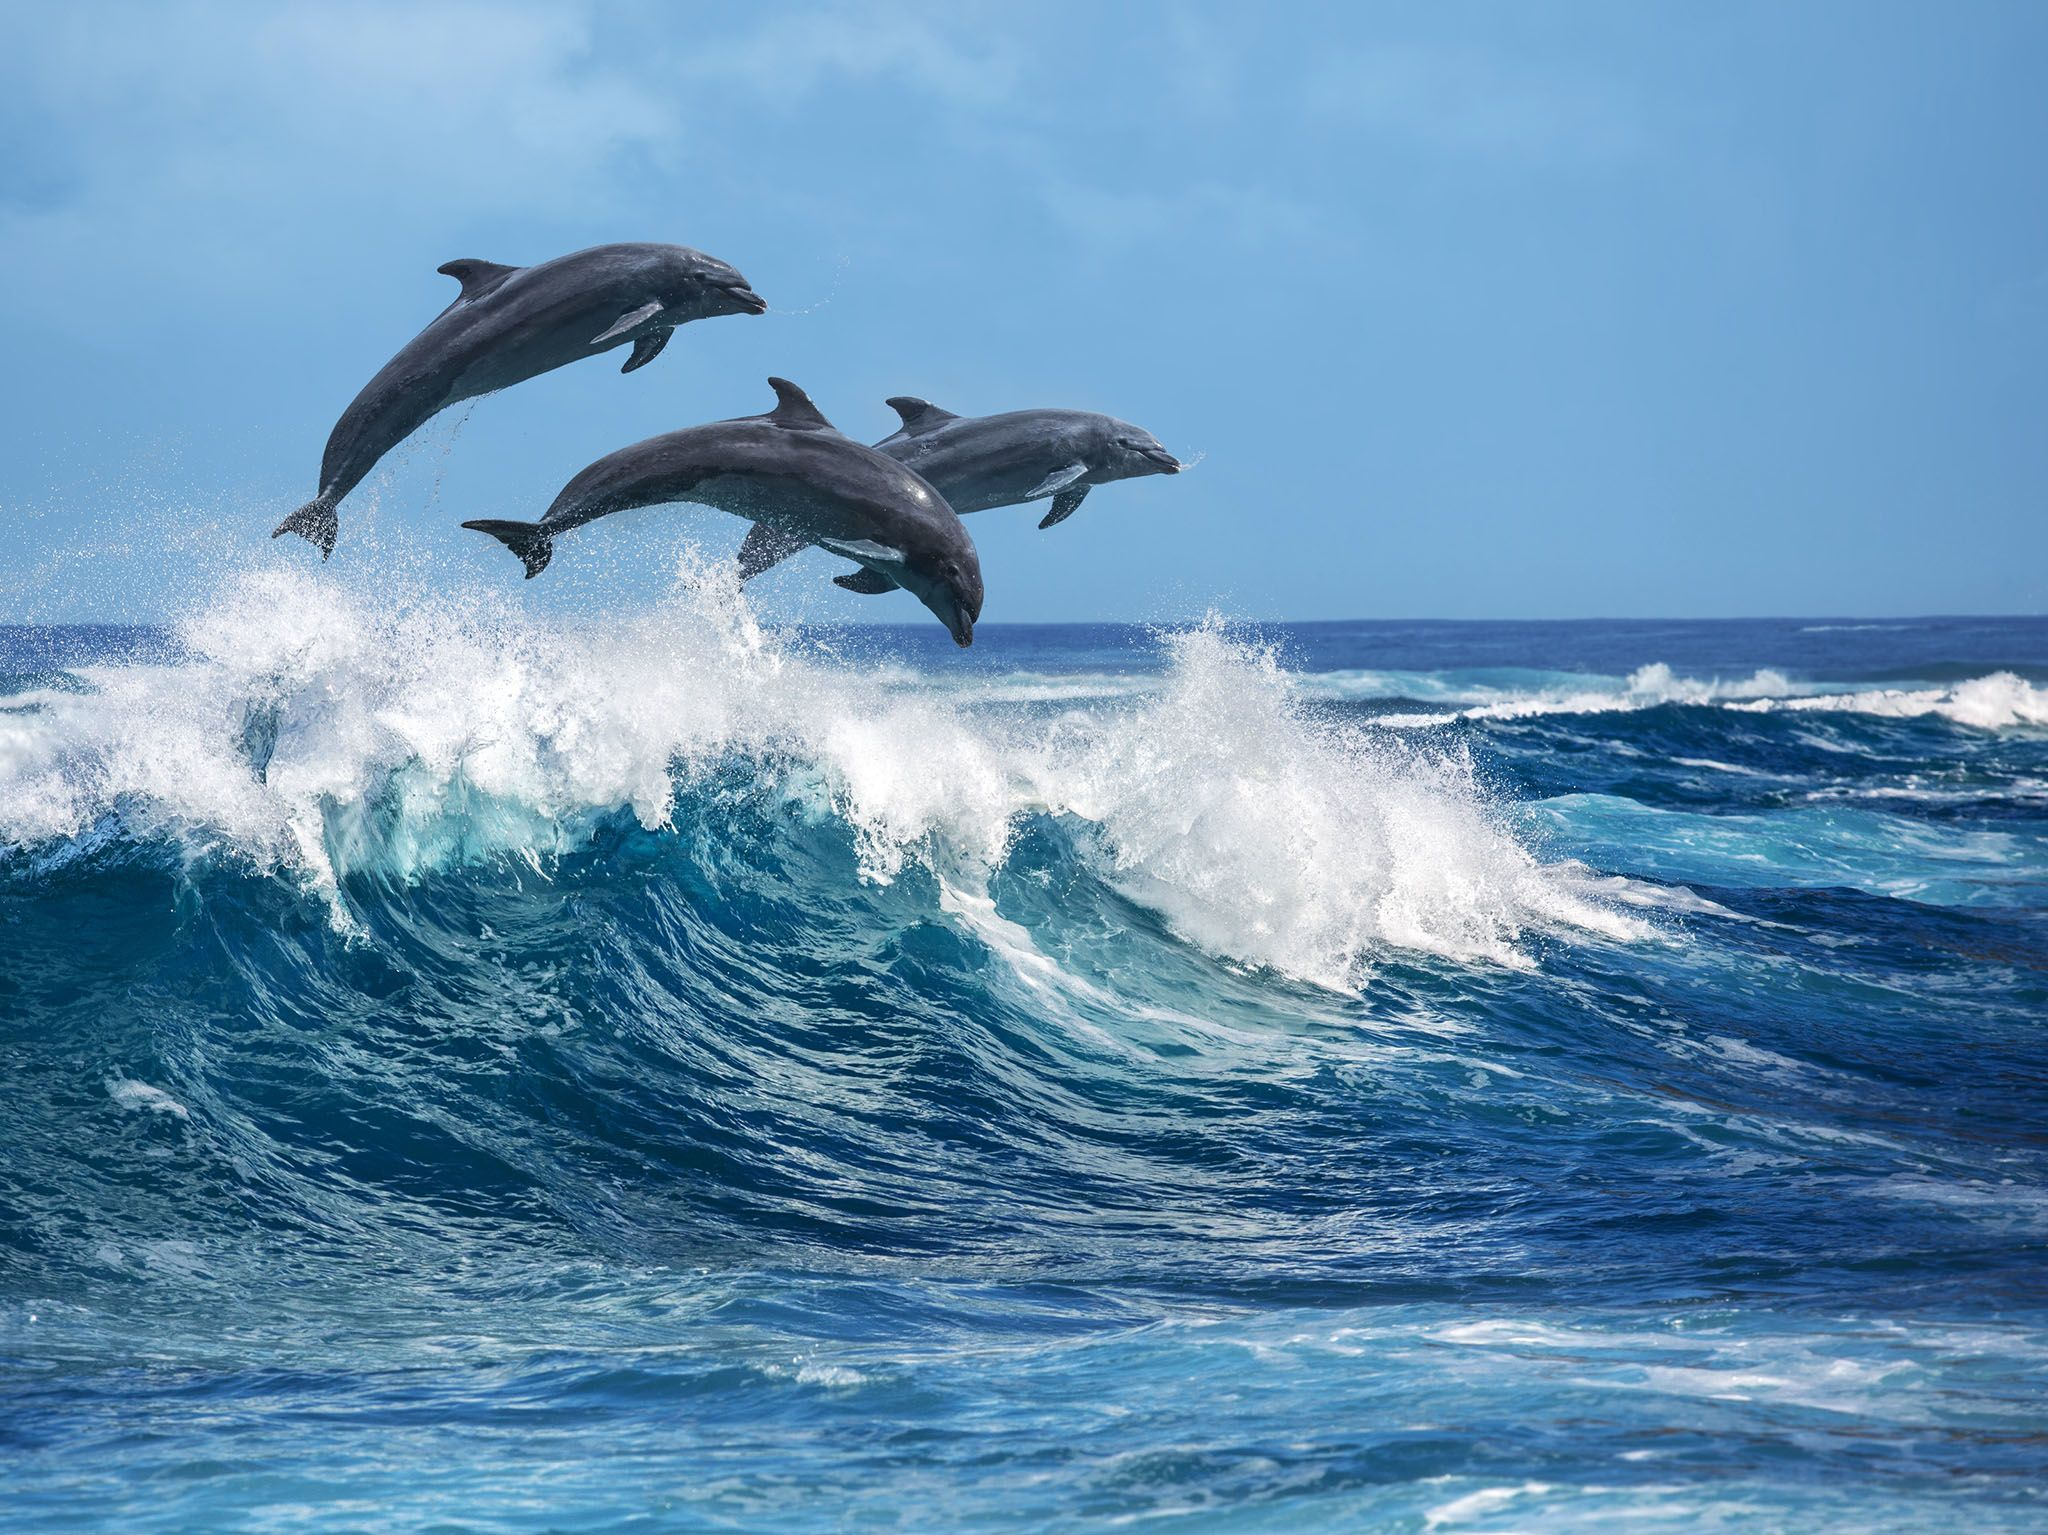 Hawaii: Three beautiful dolphins jumping over breaking waves. Hawaii Pacific Ocean wildlife... [Photo of the day - March 2017]